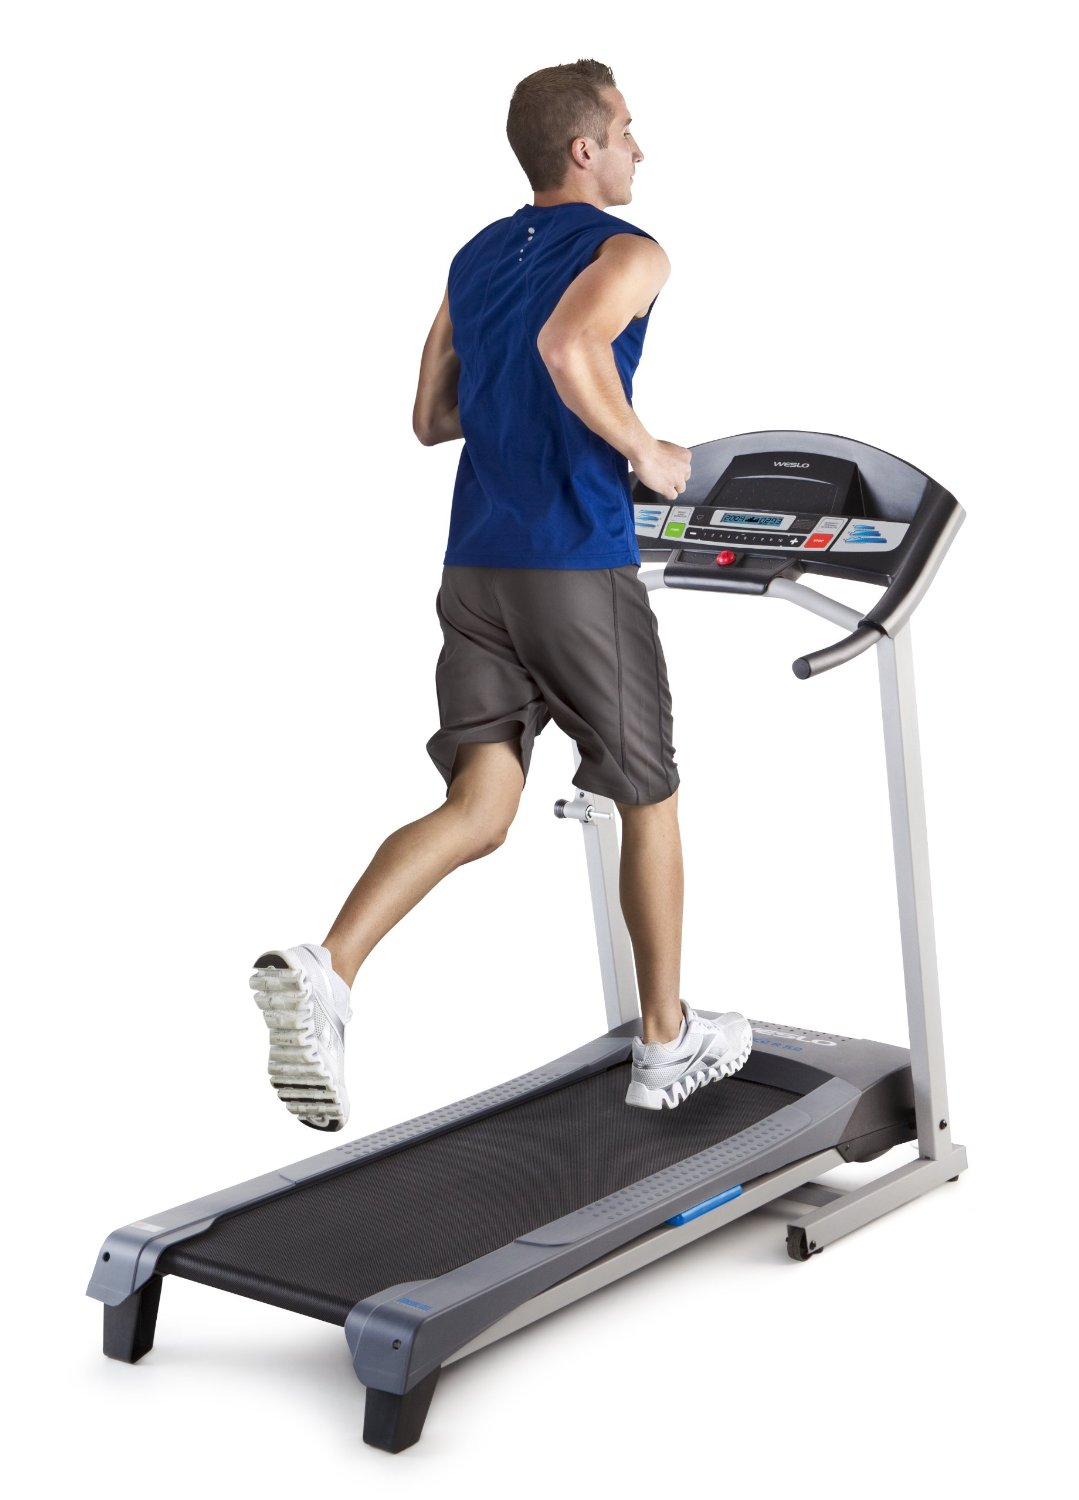 The Best Treadmill. Treadmills are an investment, but the best ones are worth the money. We looked for well-designed, ergonomic machines at a range of prices and tech levels to suit the home treadmill needs of everyone from casual joggers to fitness fanatics.